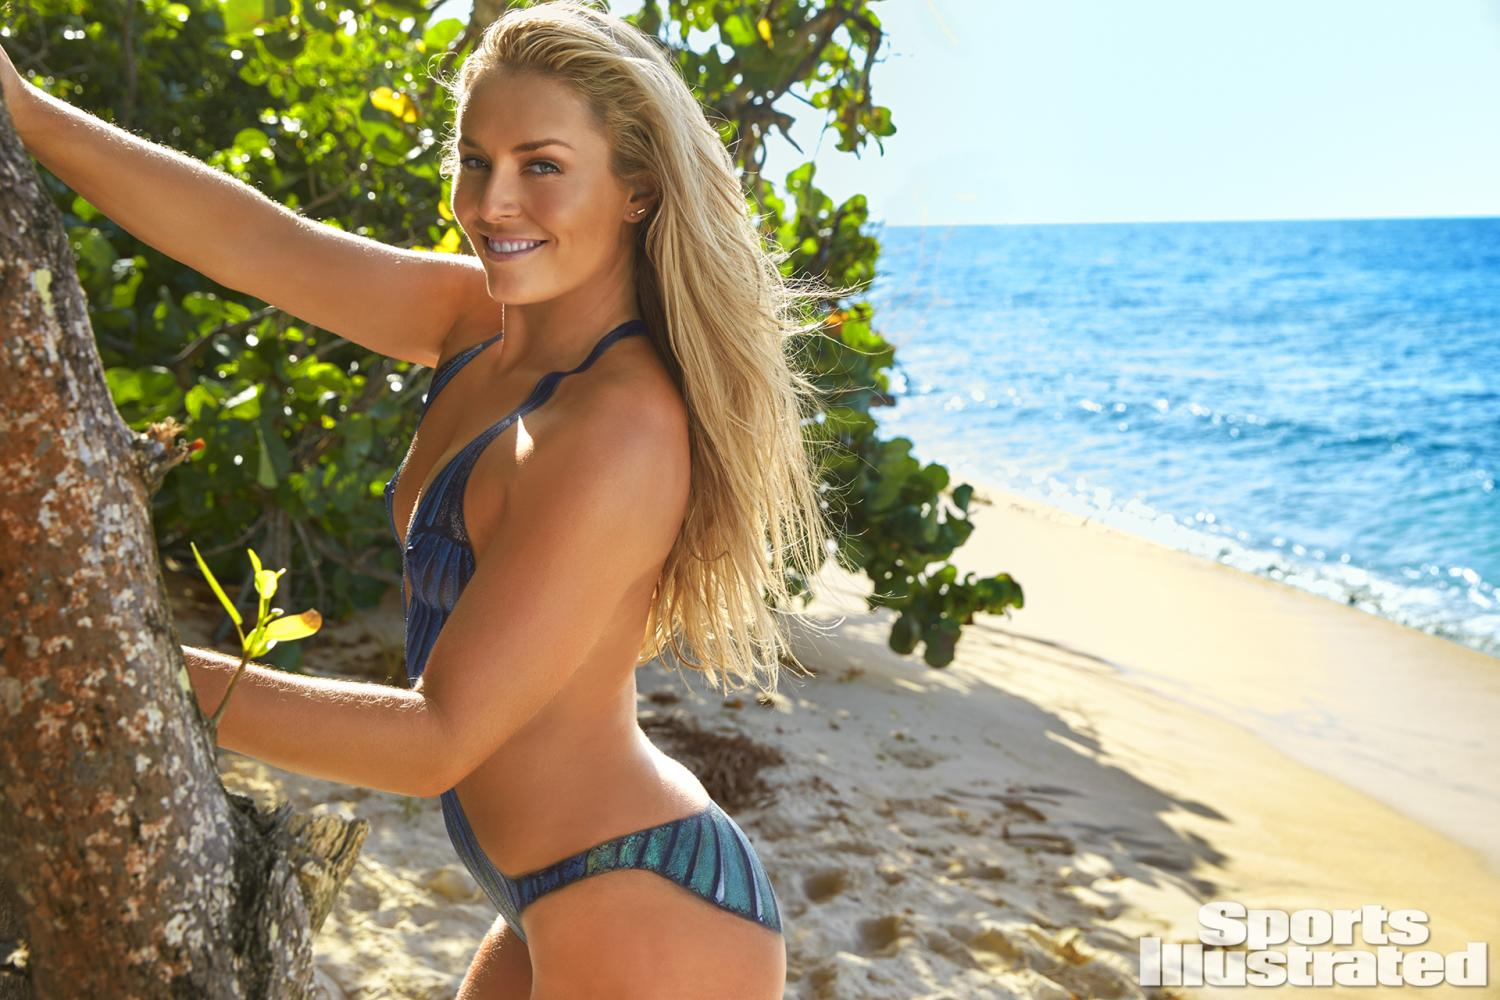 Lindsey Vonn Swimsuit Body Paint Photos, Sports Illustrated Swimsuit ...